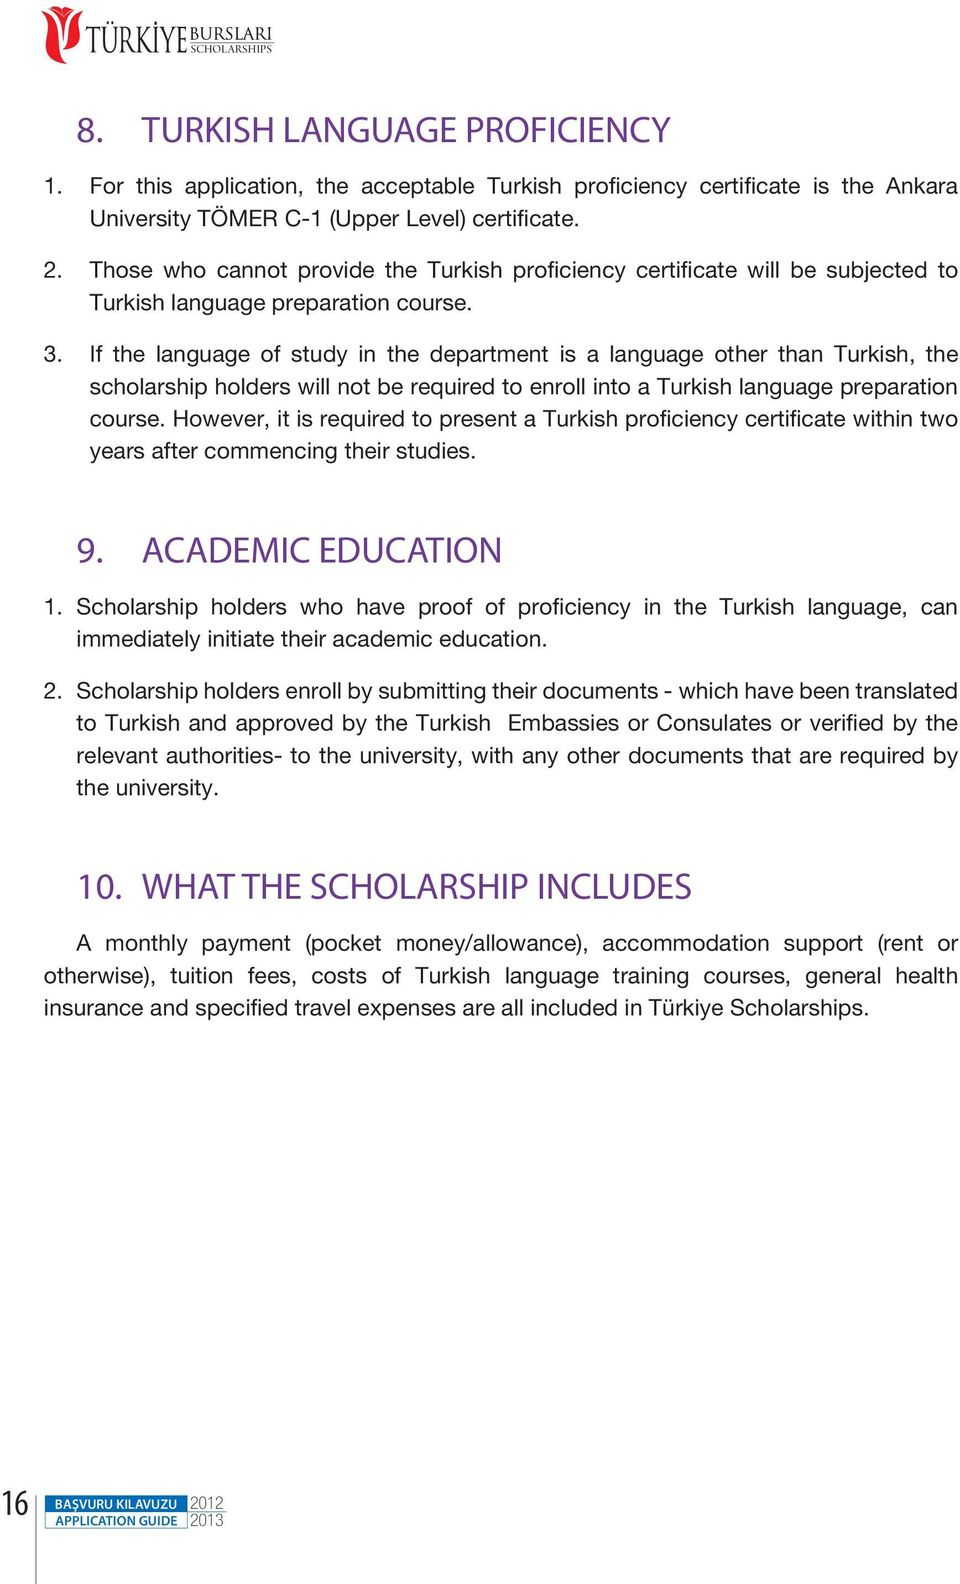 If the language of study in the department is a language other than Turkish, the scholarship holders will not be required to enroll into a Turkish language preparation course.